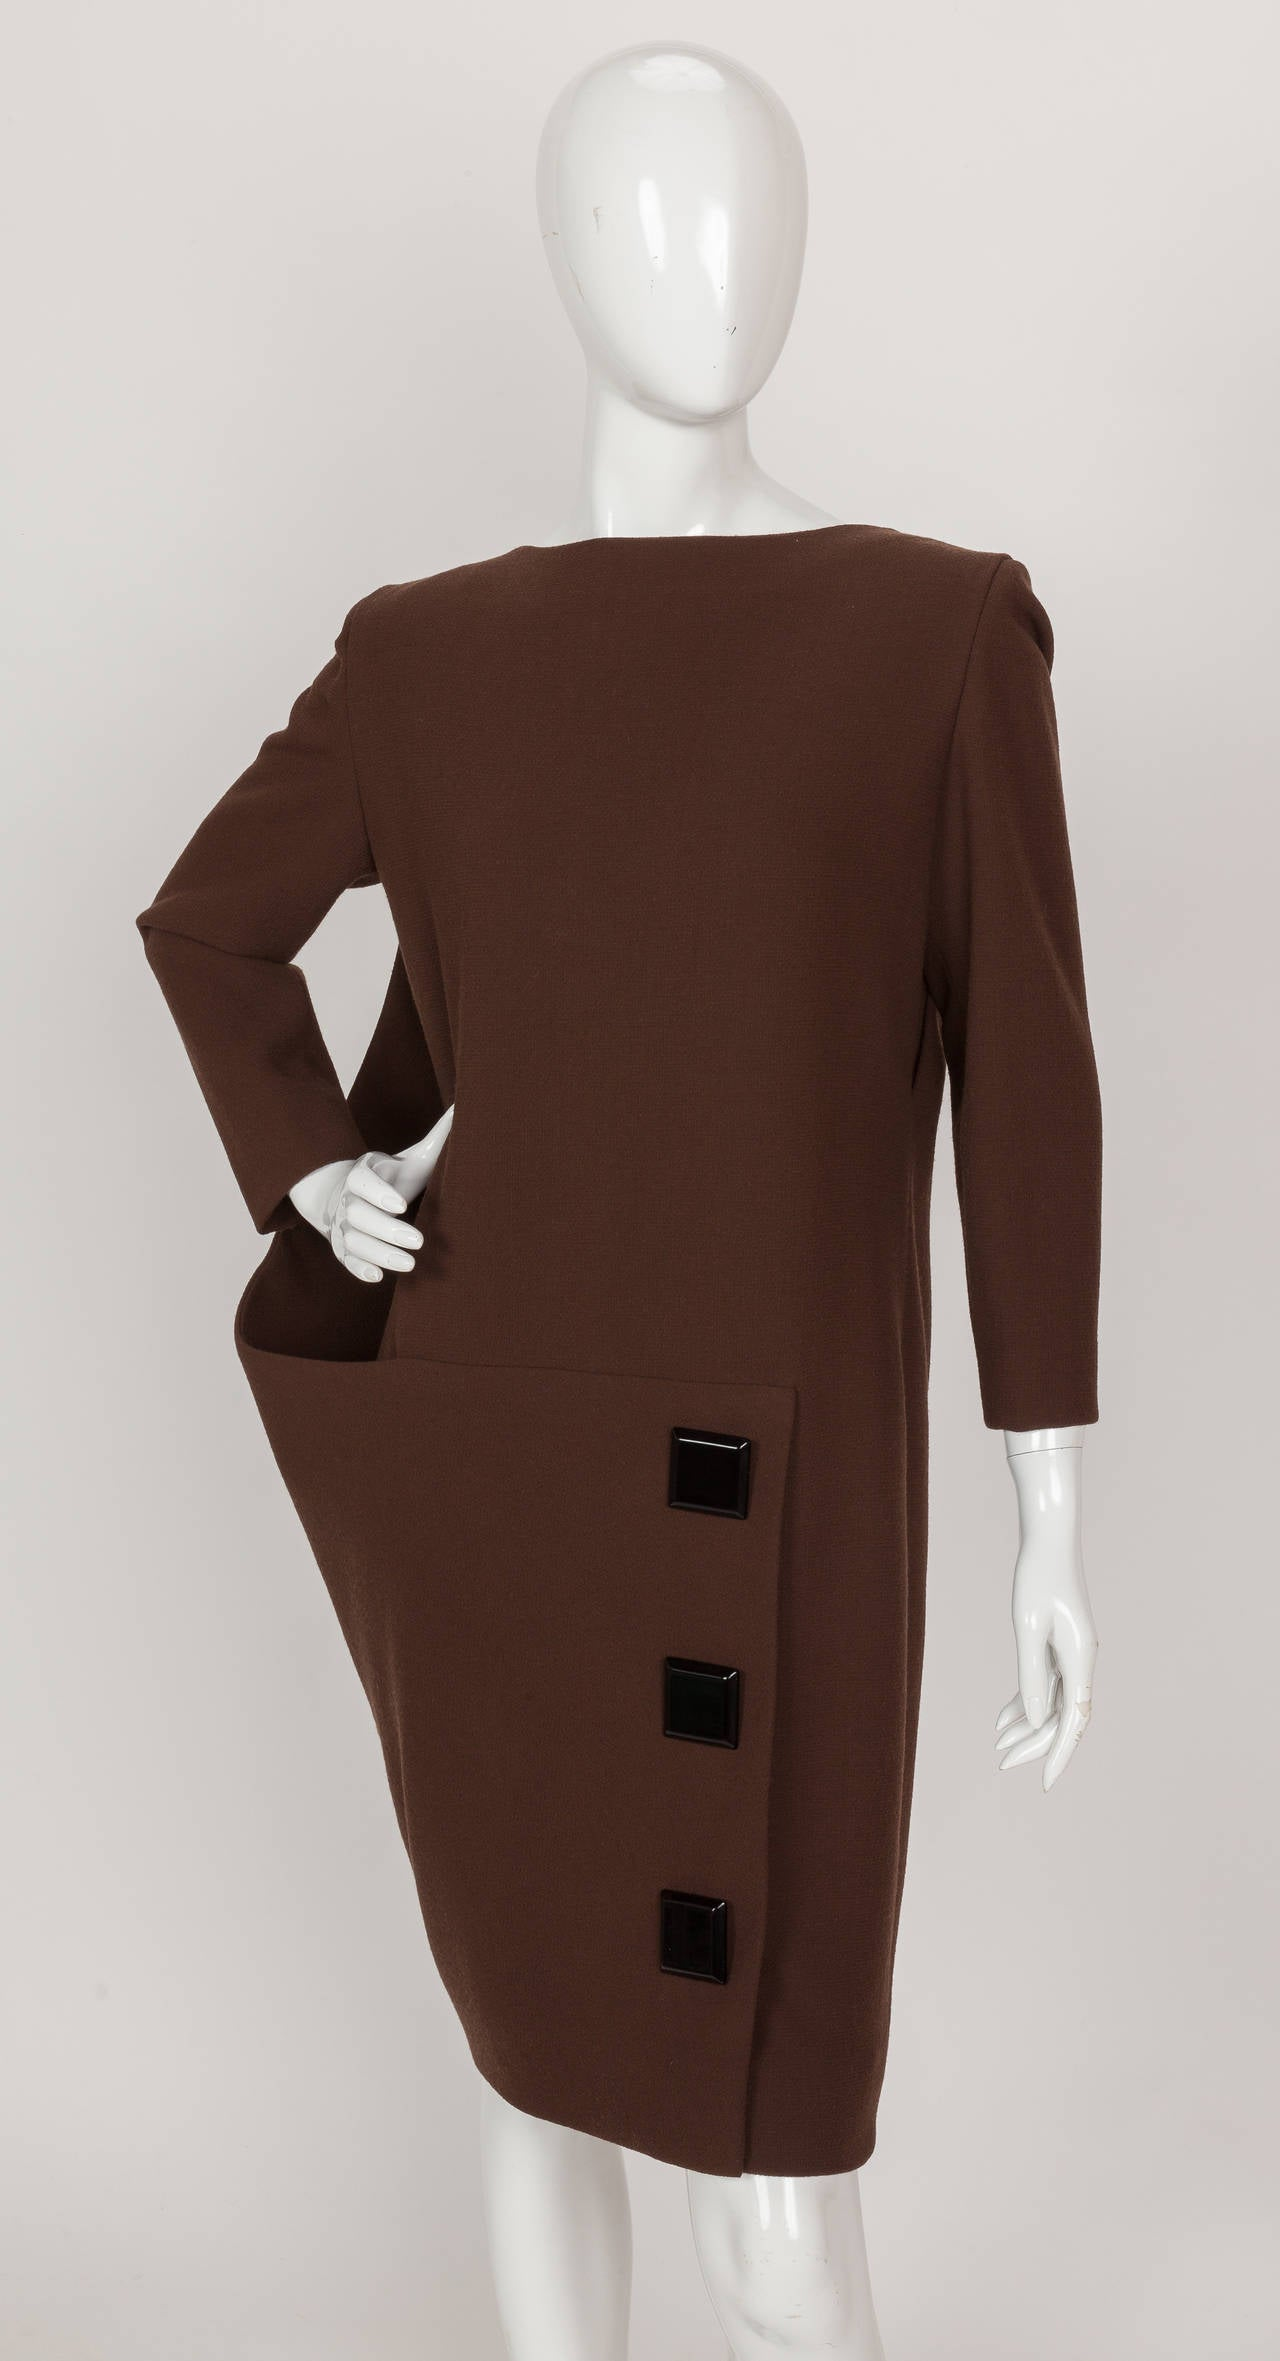 An iconic and rare circa 1992 Pierre Cardin haute couture asymmetric brown cocktail dress with bakelite button trim. What strikes me about this amazing dress is how modern it is - with its asymmetric and triangular silhouette formed out of a